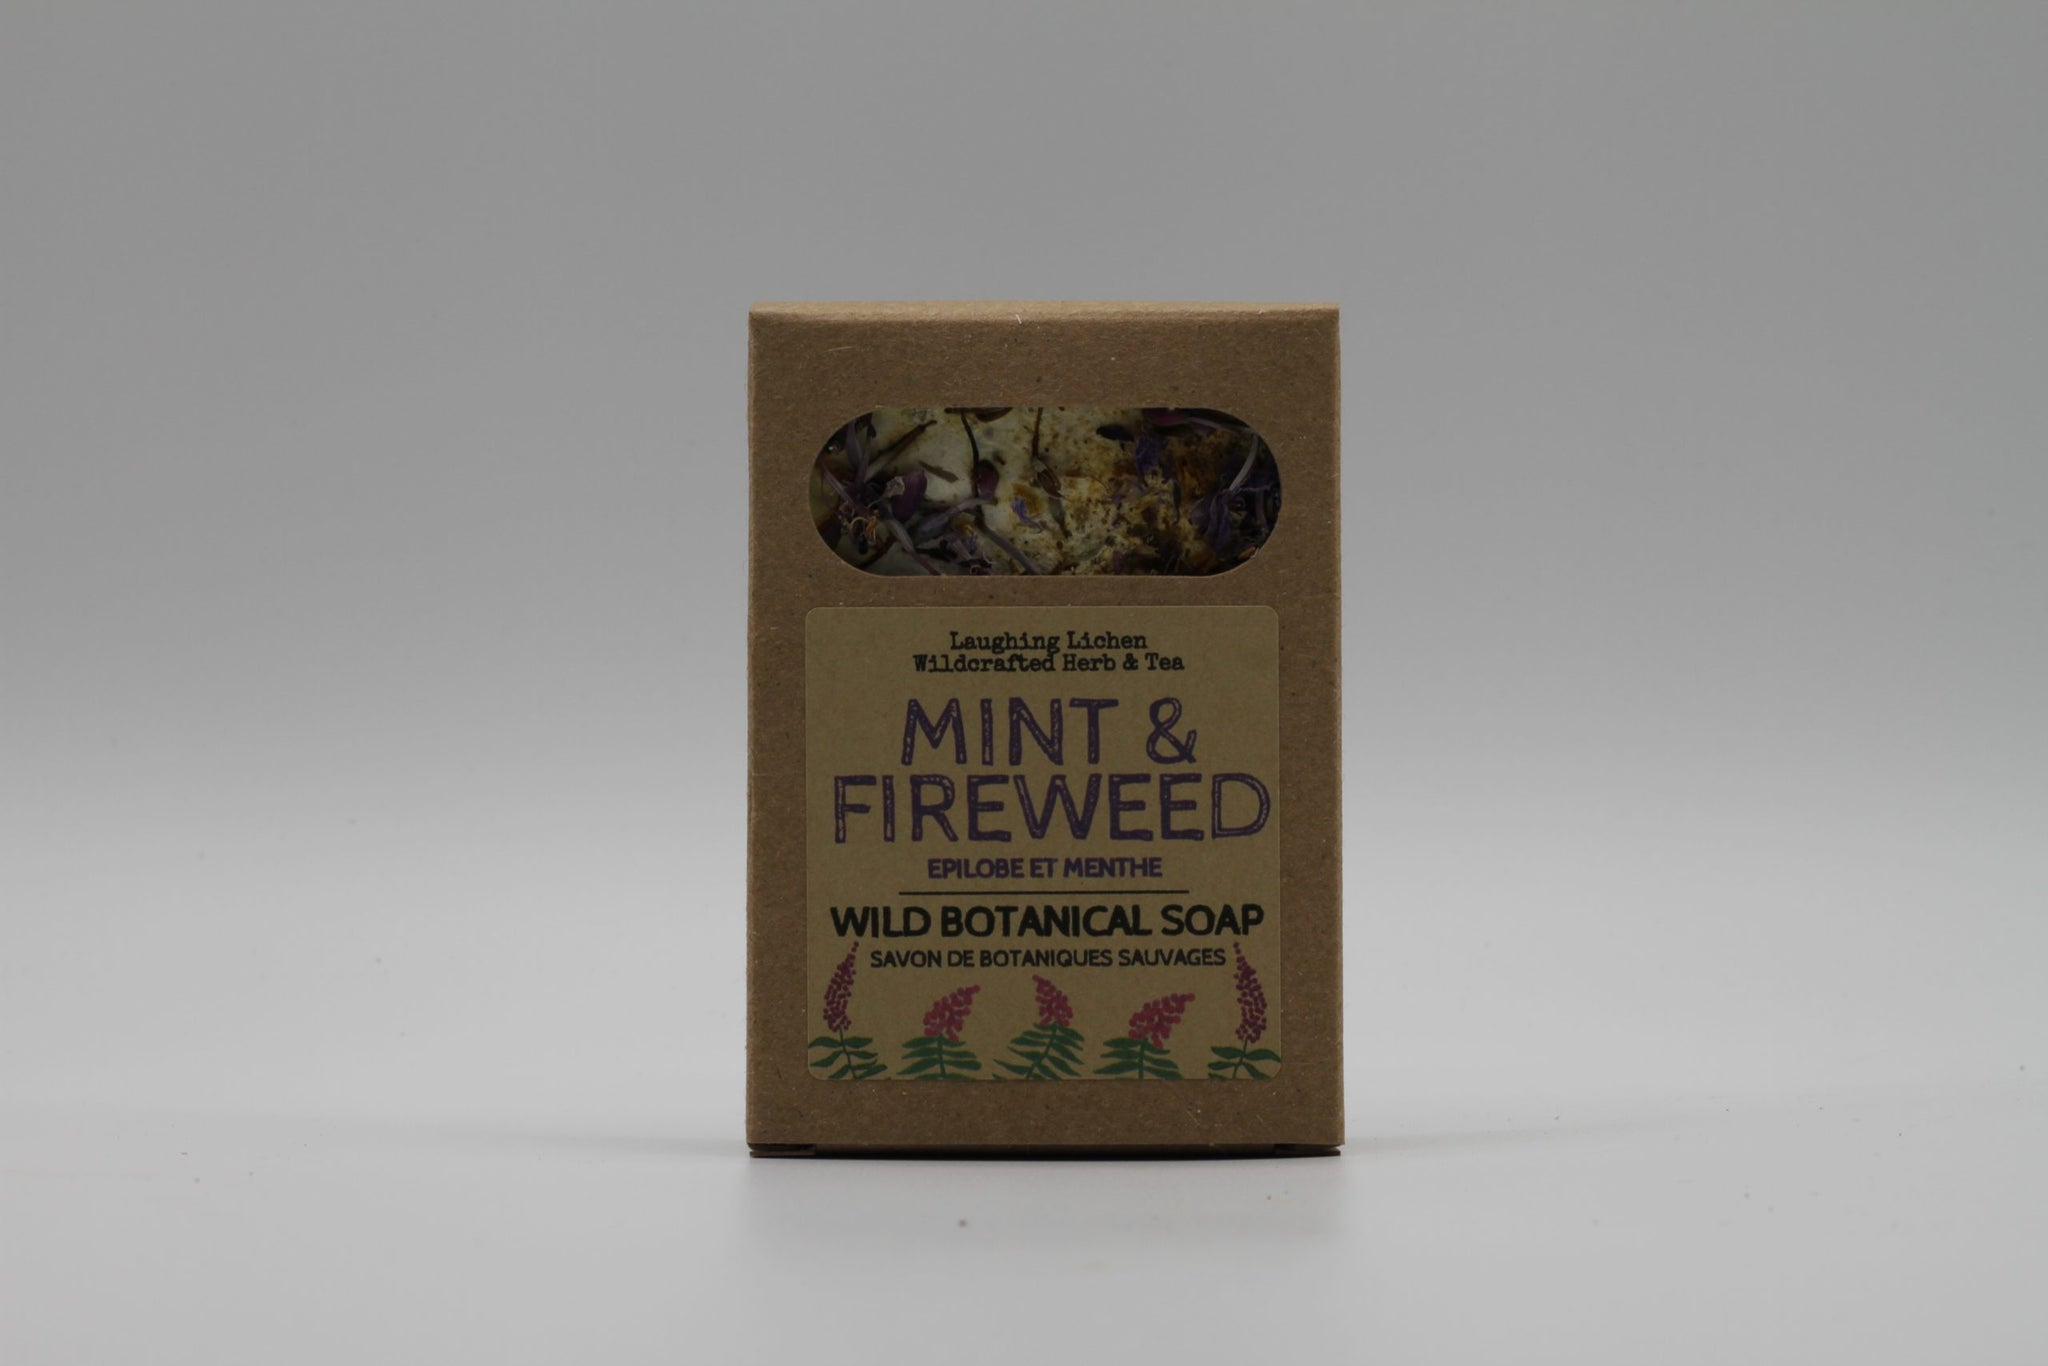 Laughing Lichen Fireweed & Mint  Soap